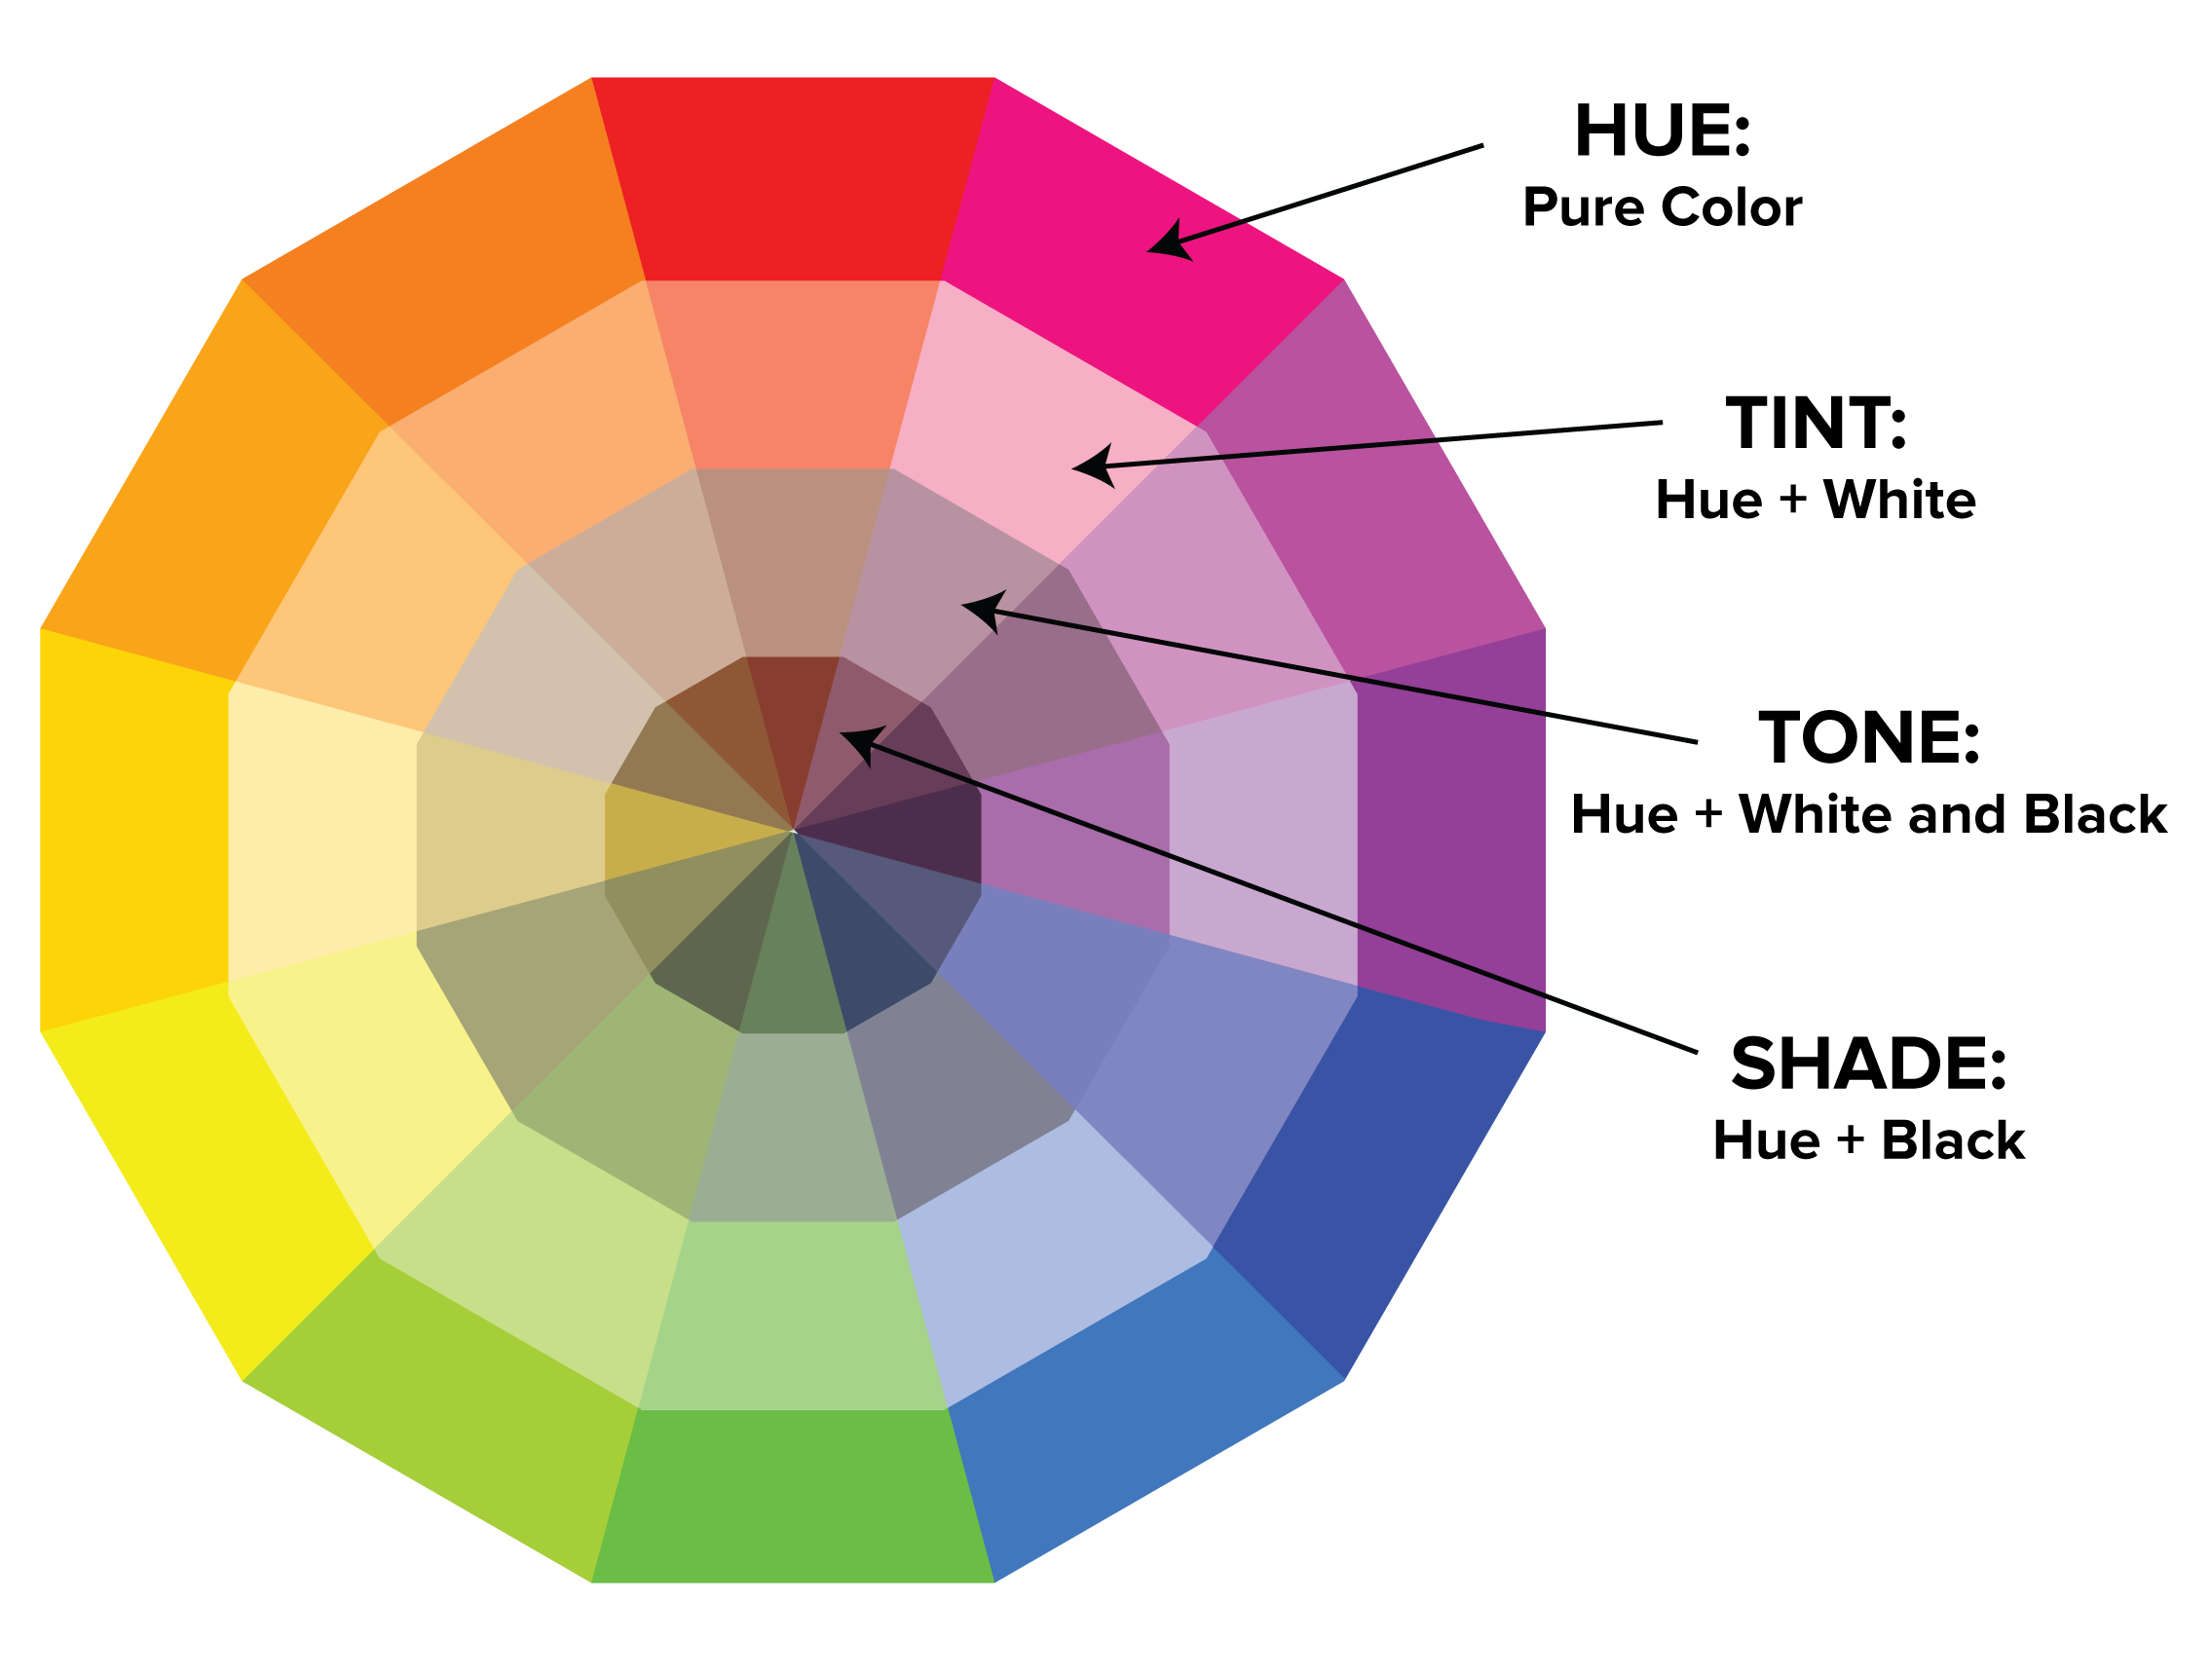 Color theory 101 how to choose the right colors for your for Tone color definition